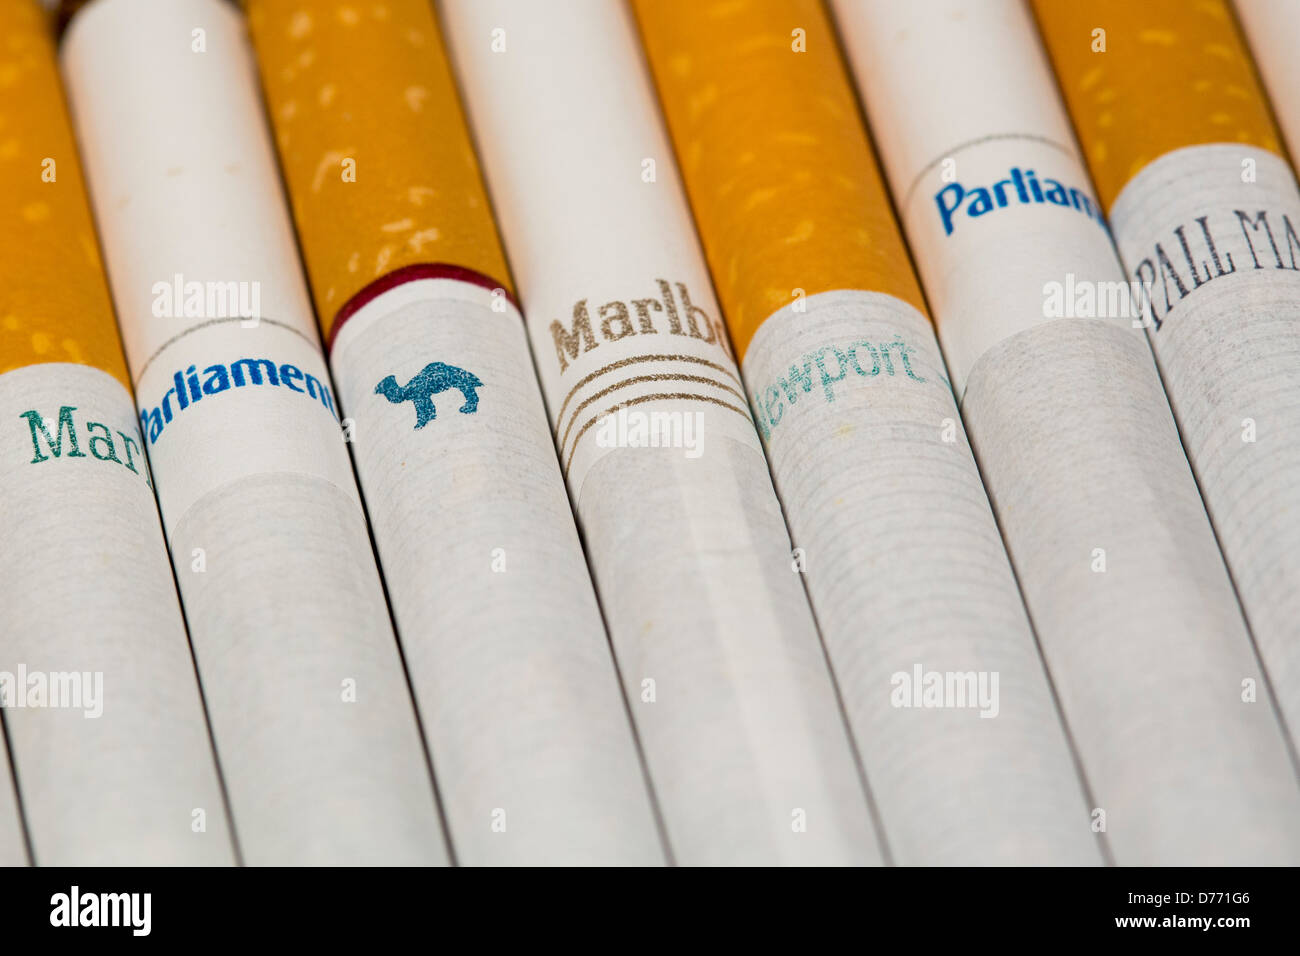 Can cigarettes Marlboro shipped Dublin